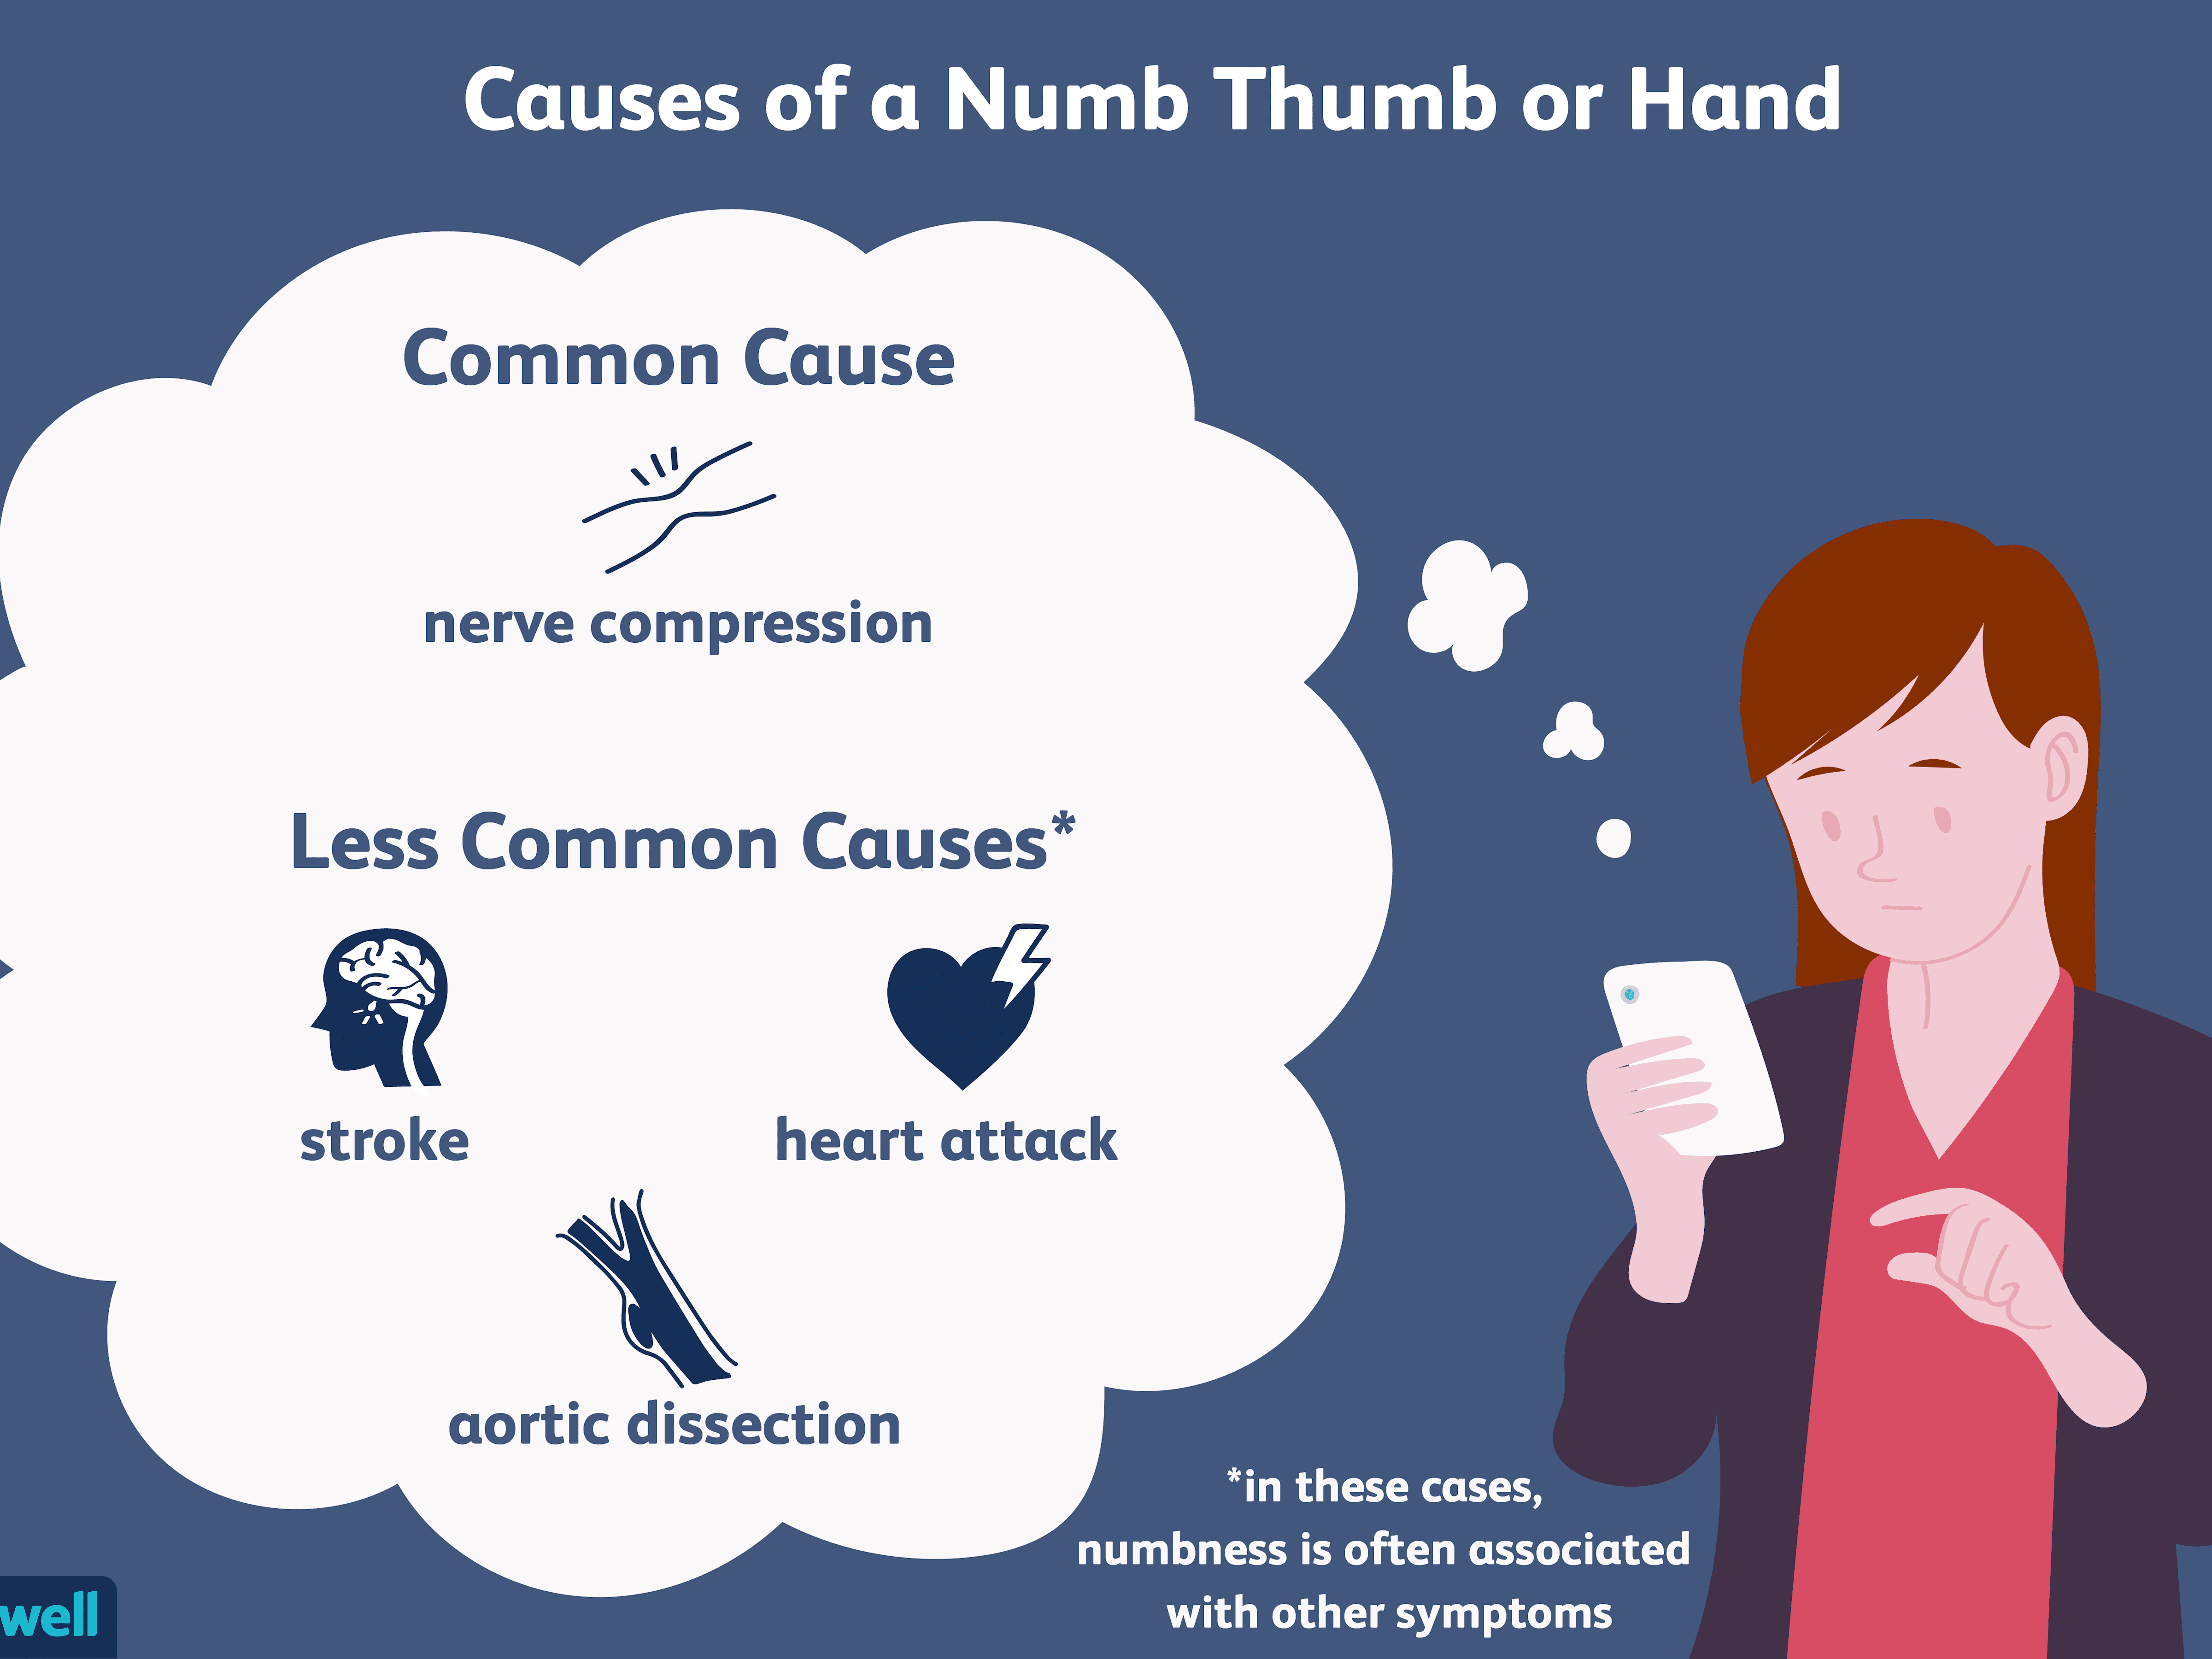 Potential Causes of a Numb Thumb or Hand